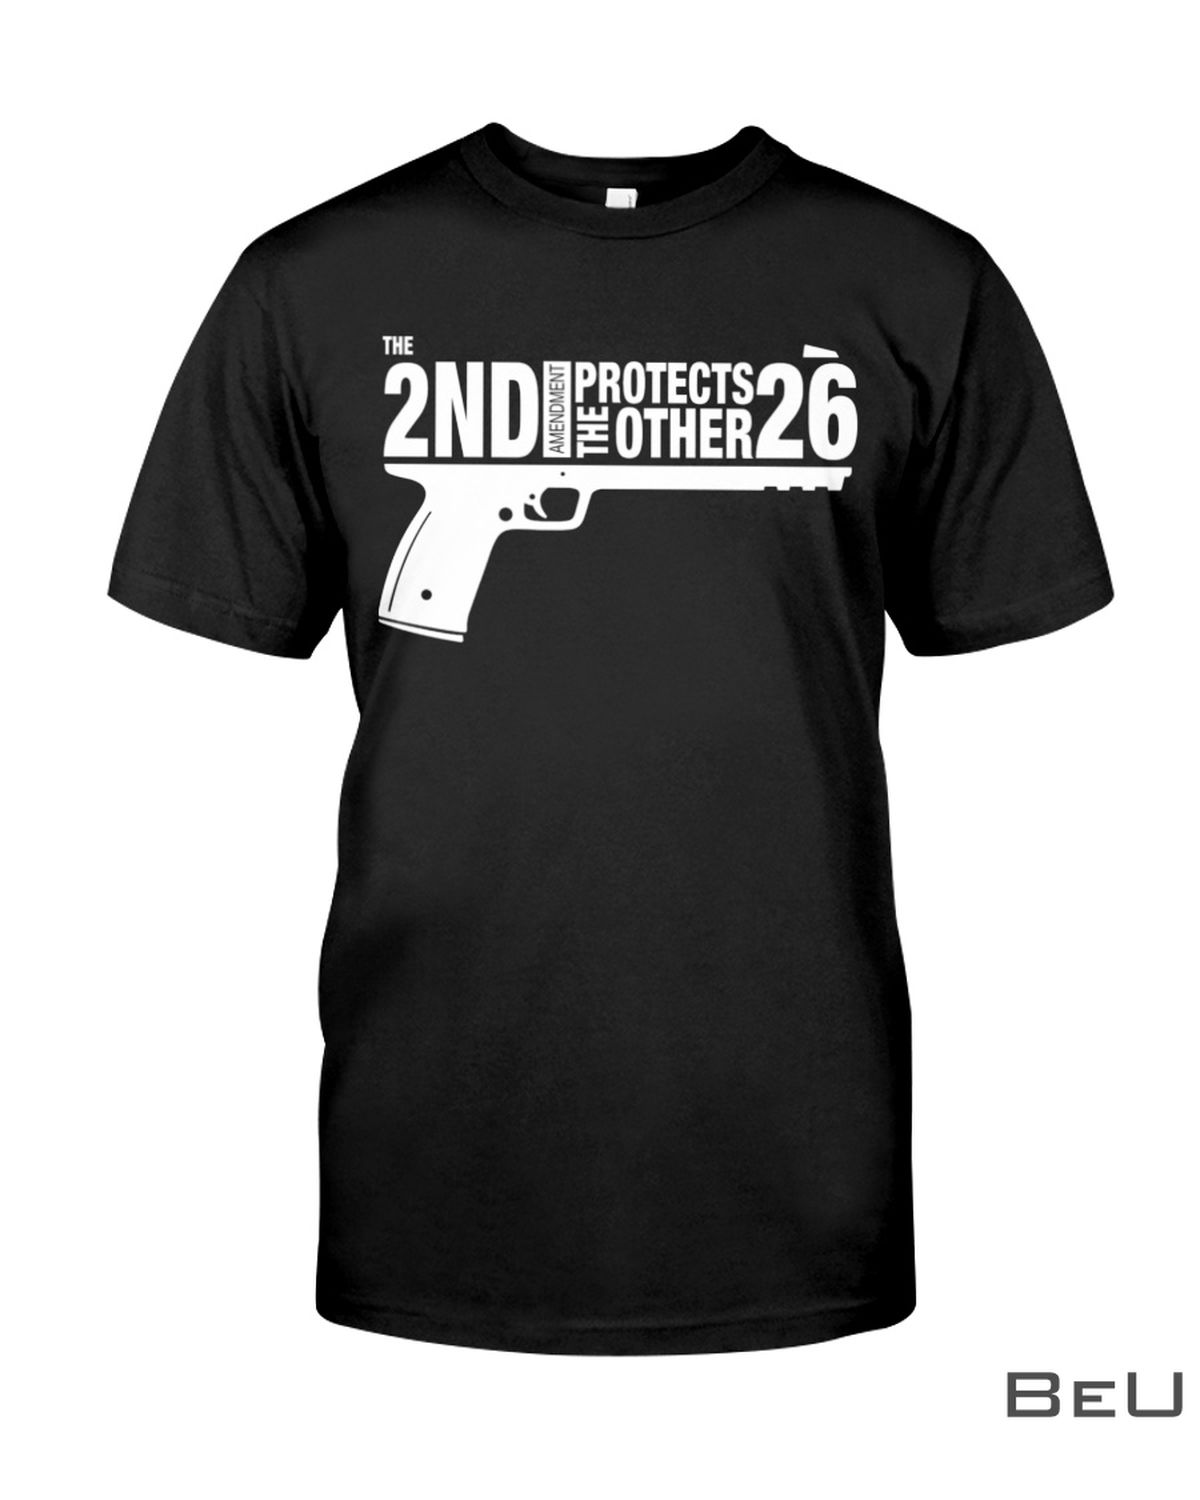 The 2ND Amendment Protects The Other 26 Shirt